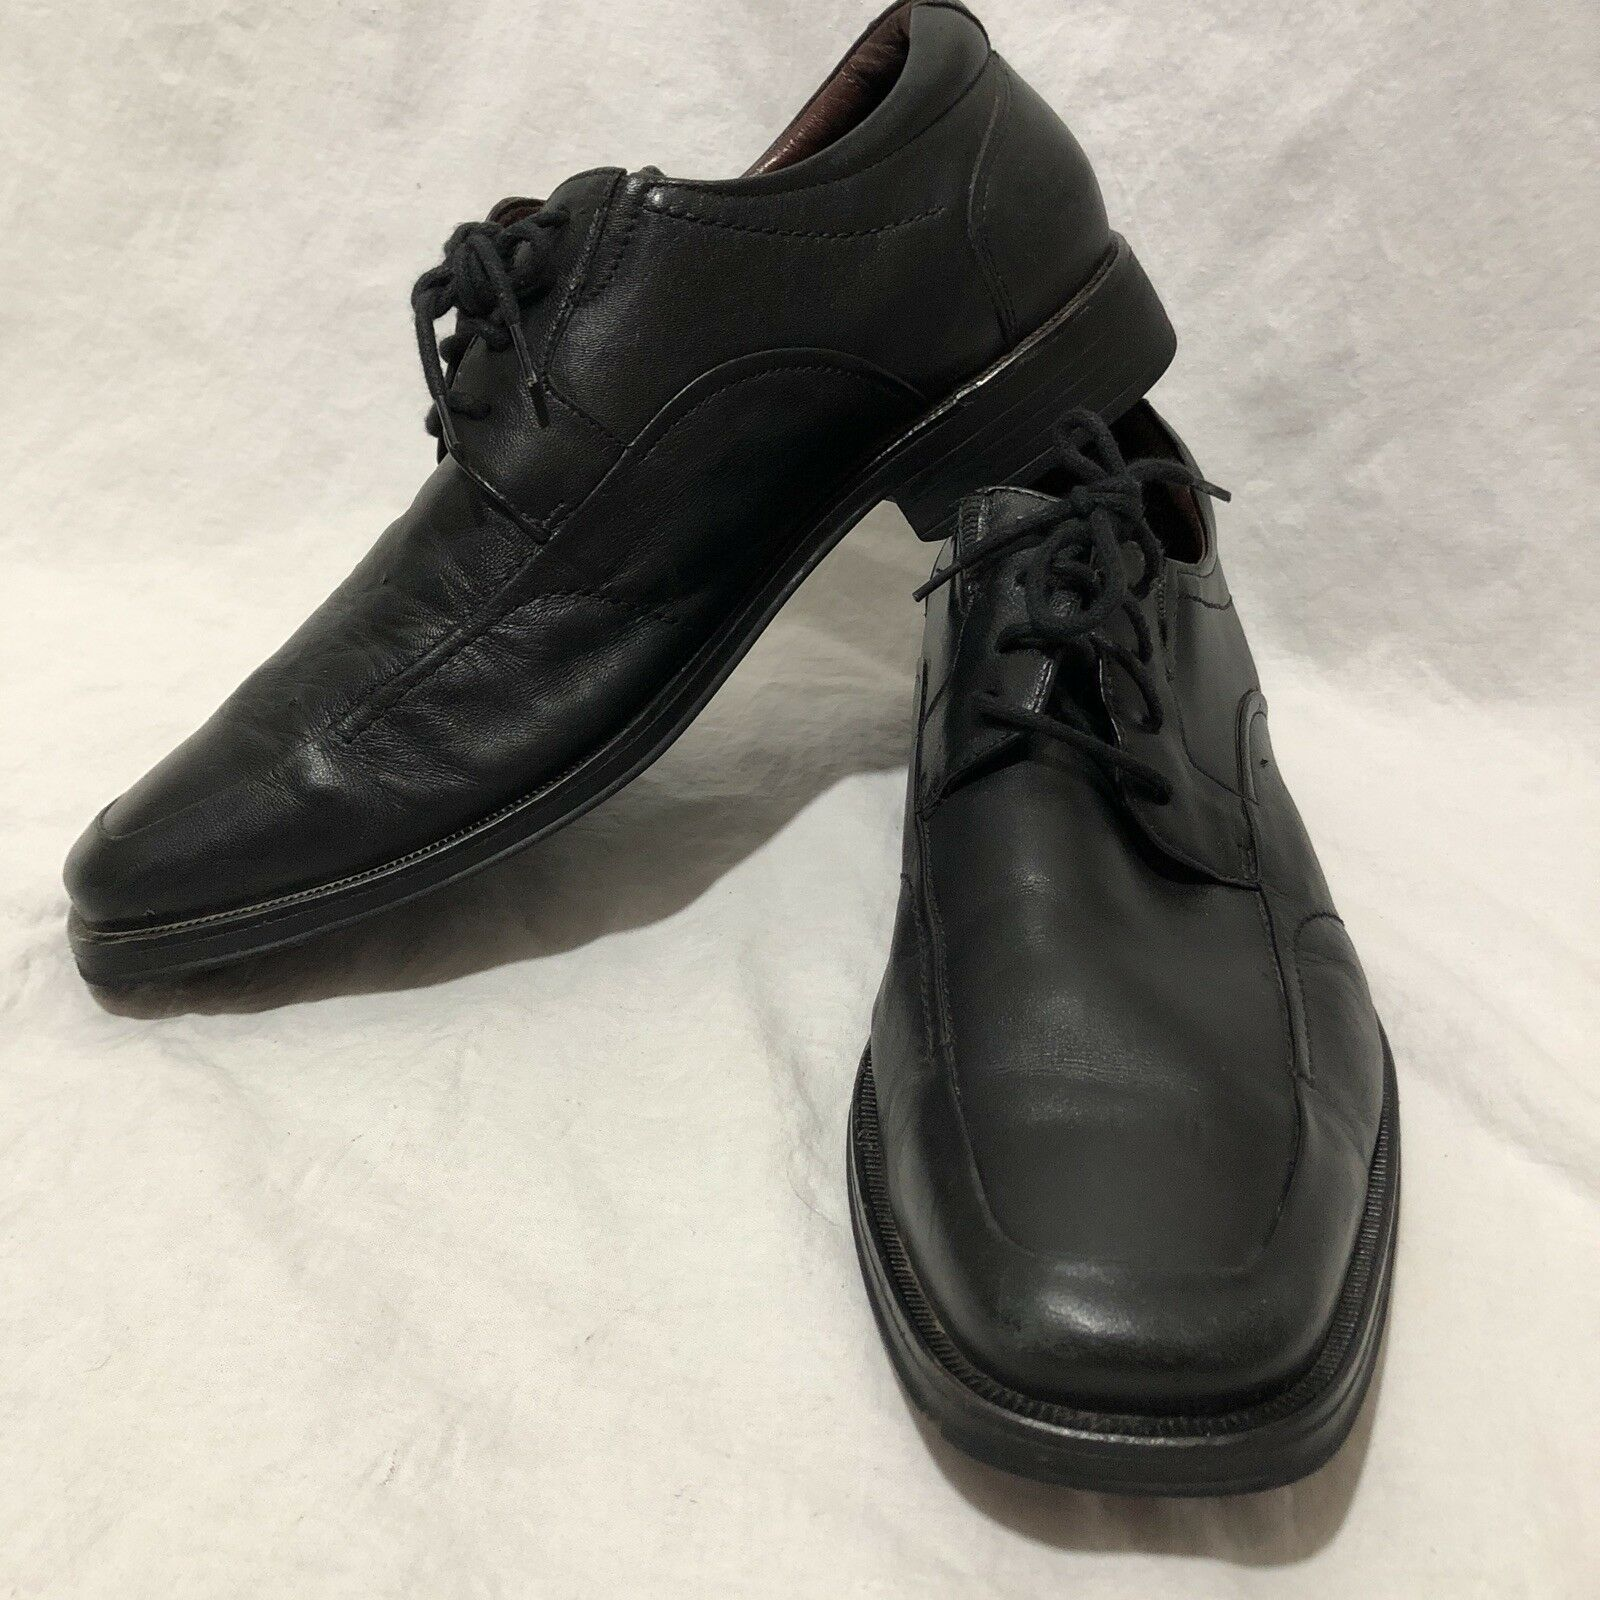 a8db36e14df ... Johnson Johnson Johnson   Murphy Men s Lace Up Oxfords Black Size 10  Made in Brazil a3edbc ...